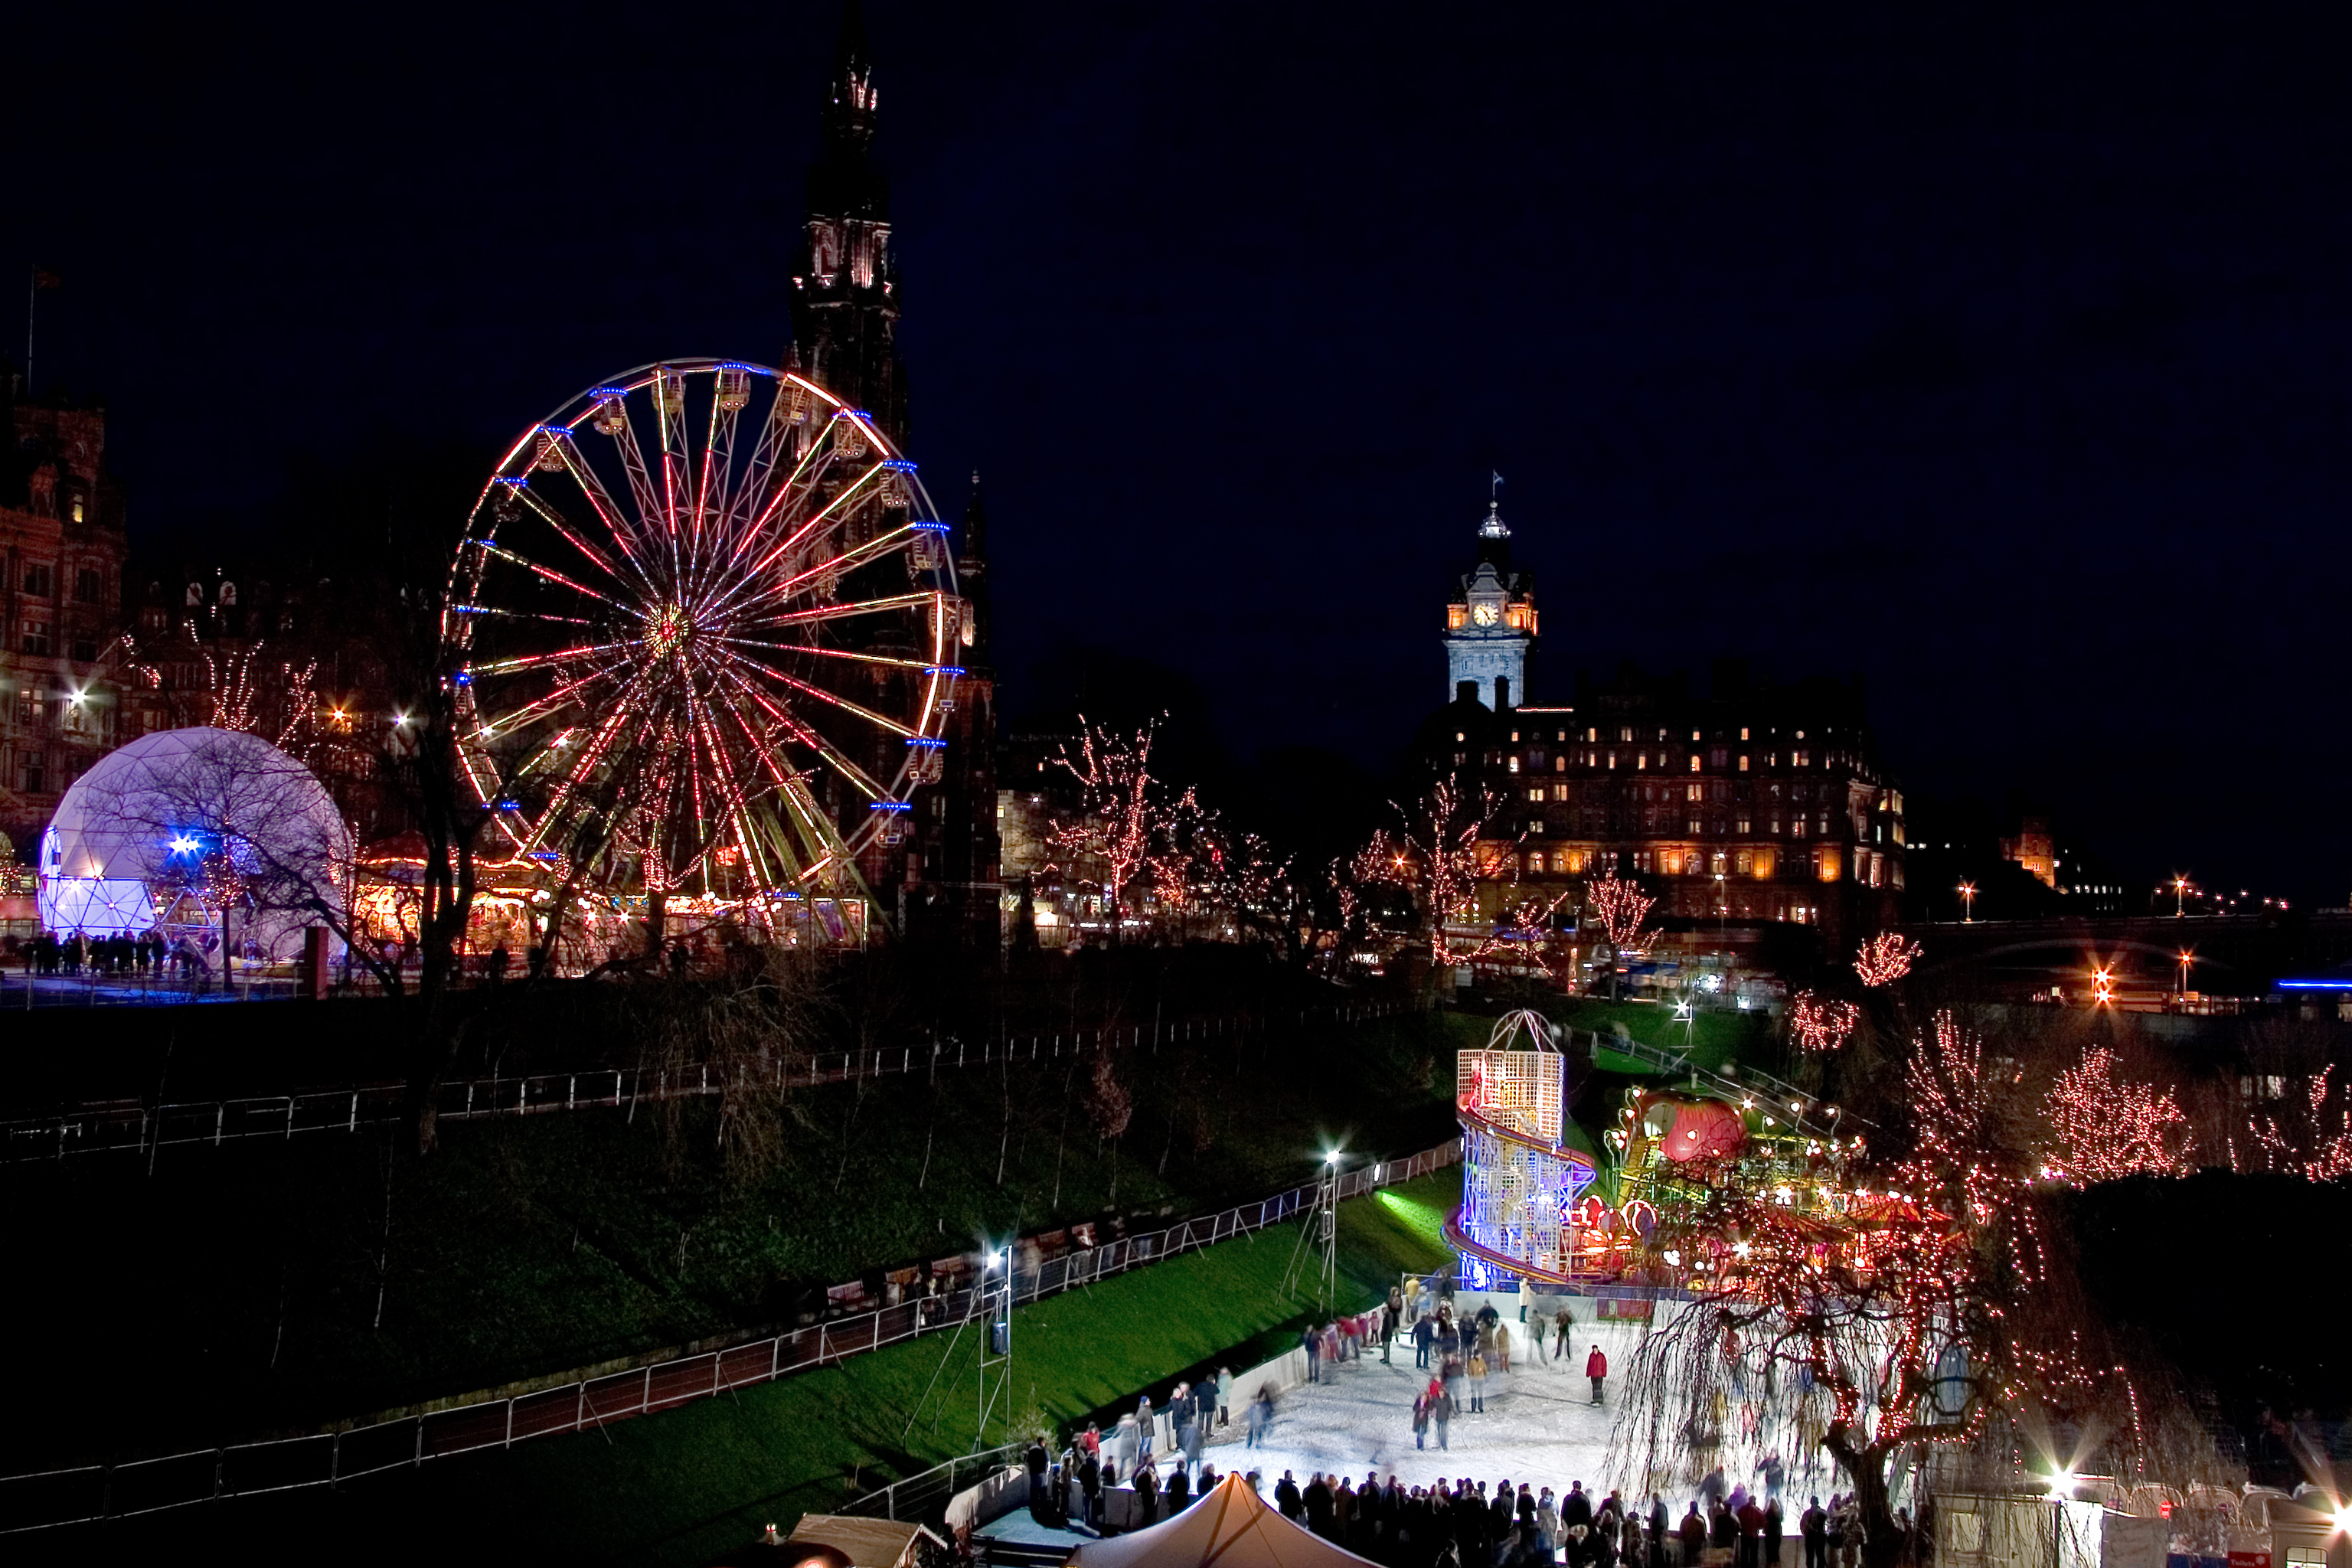 Pay a visit to Edinburgh's Christmas with the family (iStock)